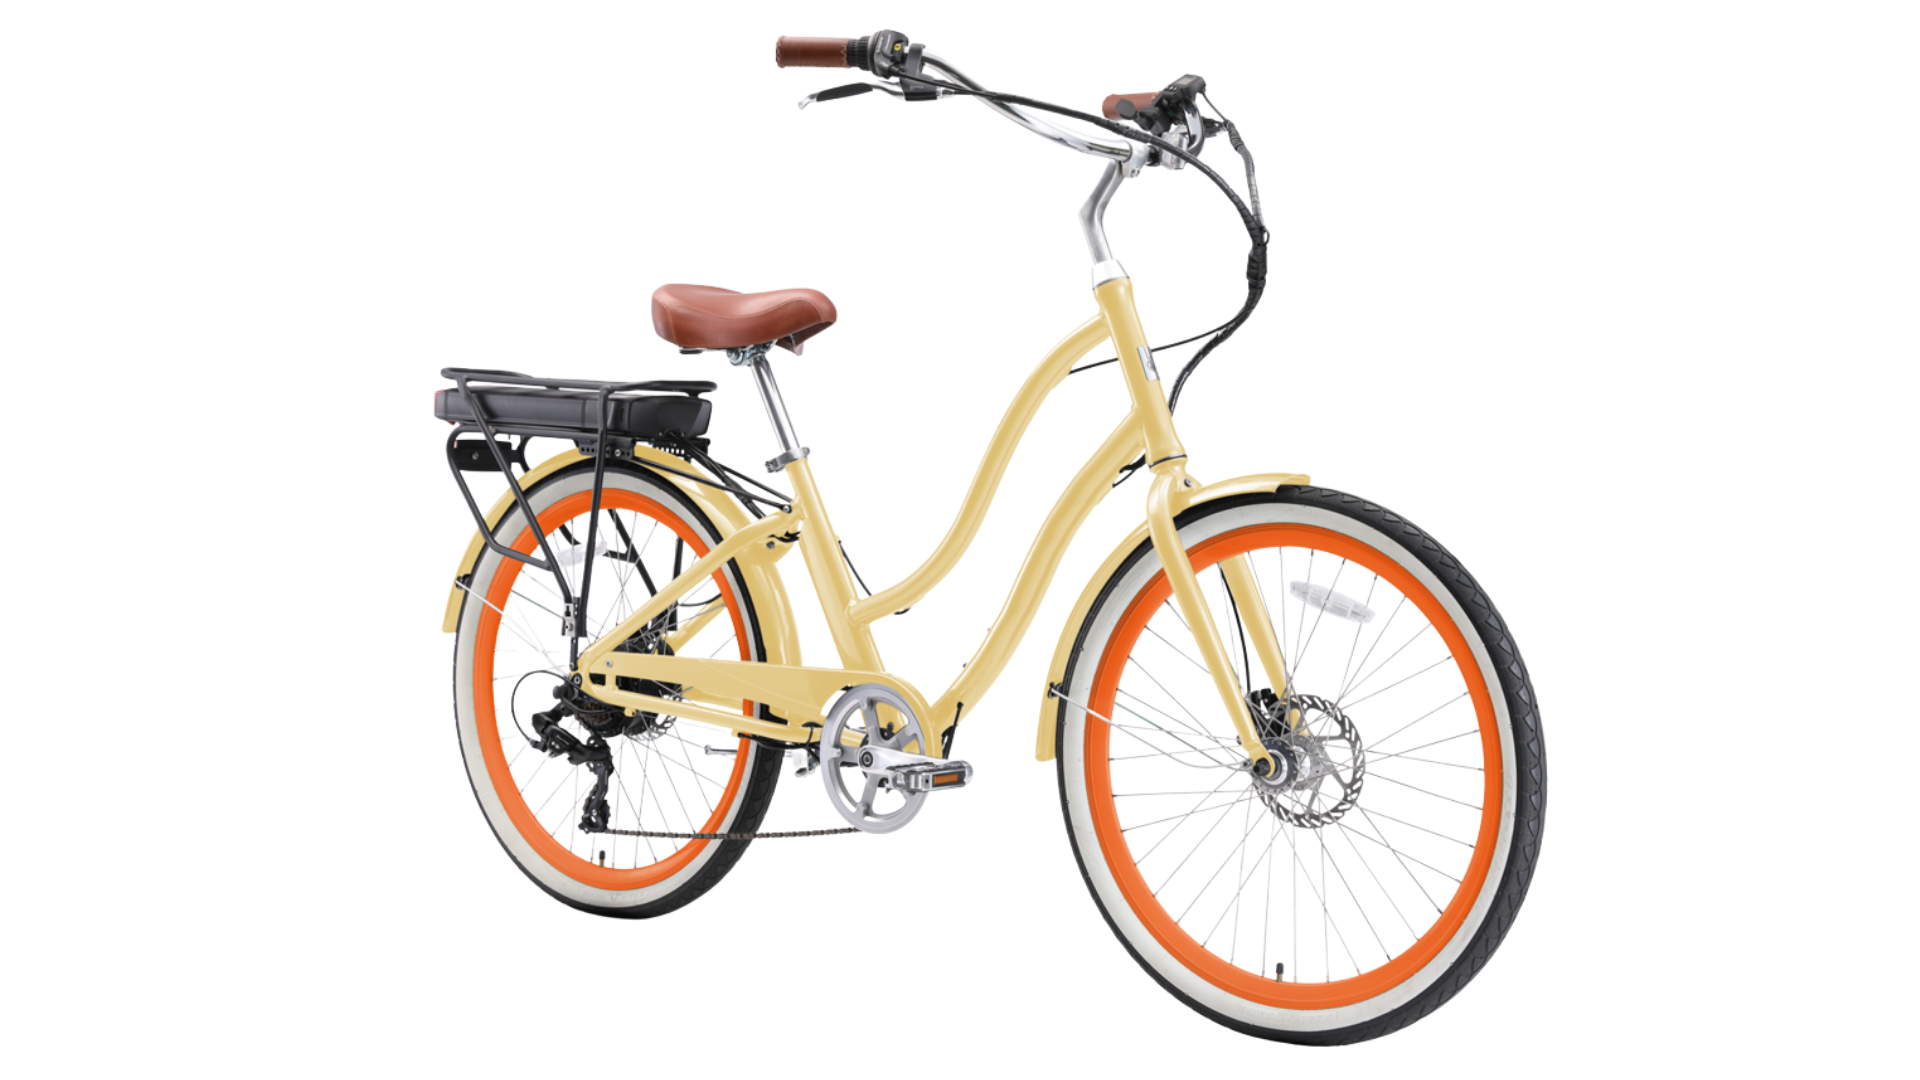 EVRYjourney 500W 7 Speed Electric Hybrid Bicycle best electric bikes for women